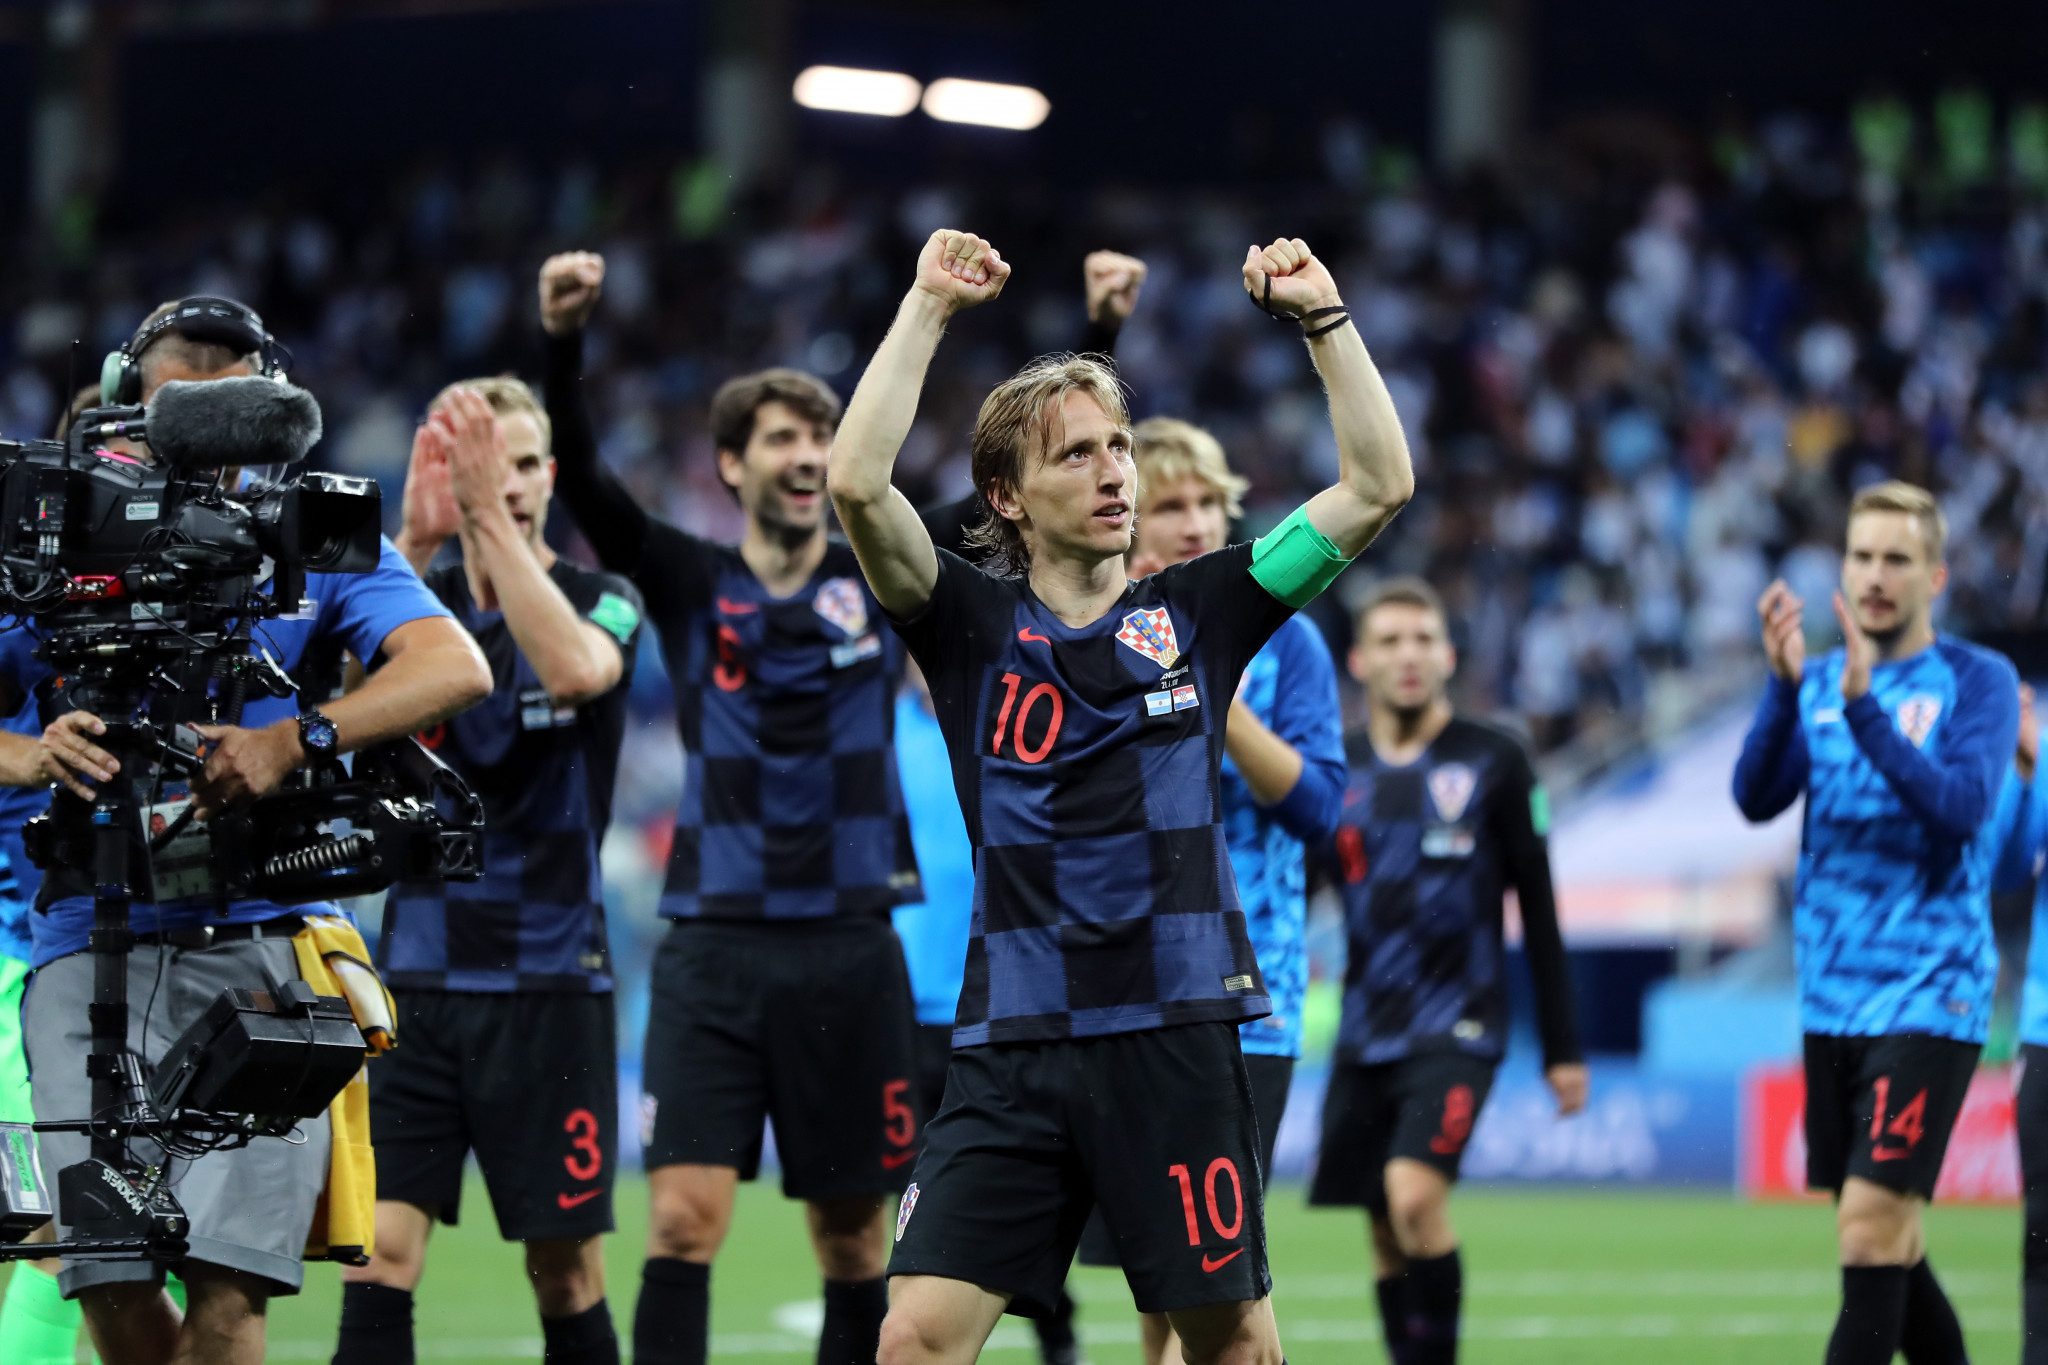 Argentina teetering on elimination after 3-0 loss to impressive Croatia at FIFA World Cup